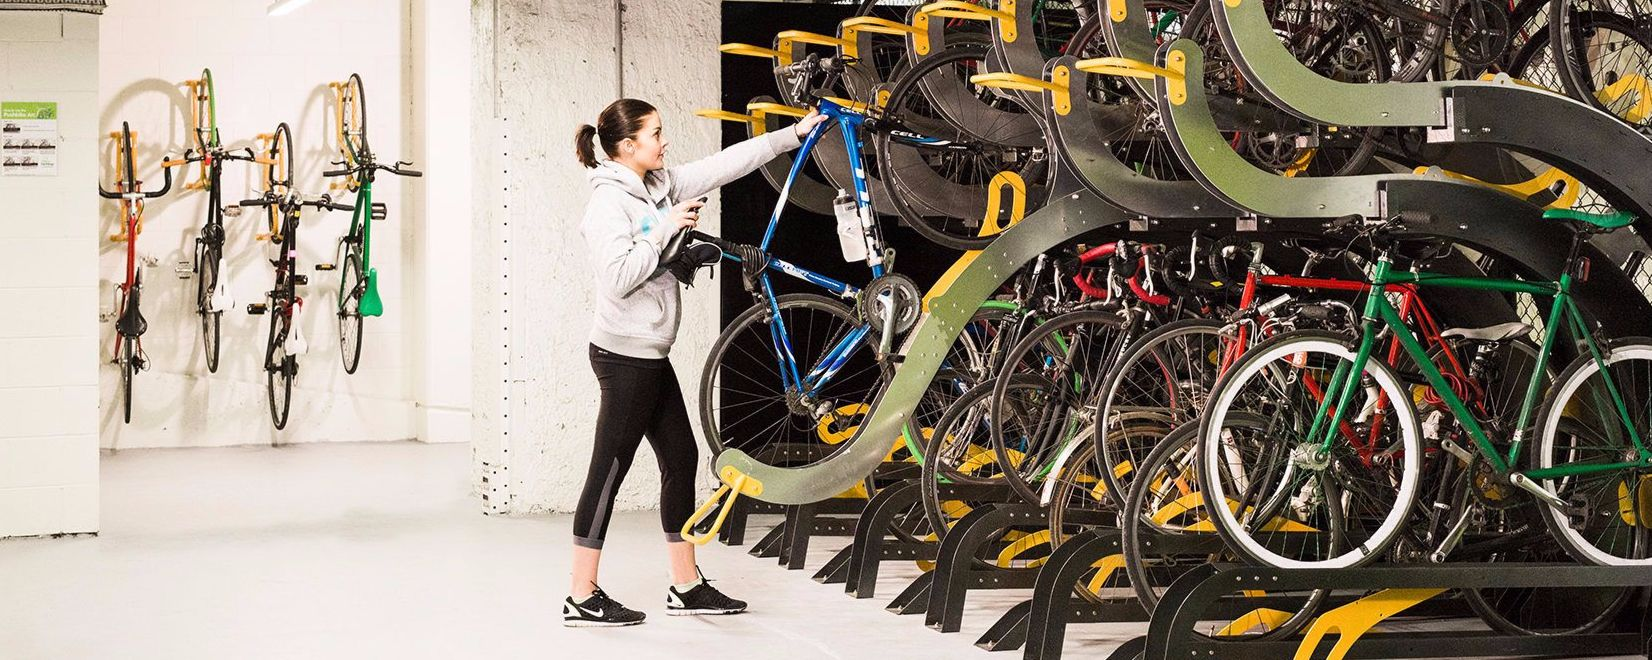 Workplace bike racks